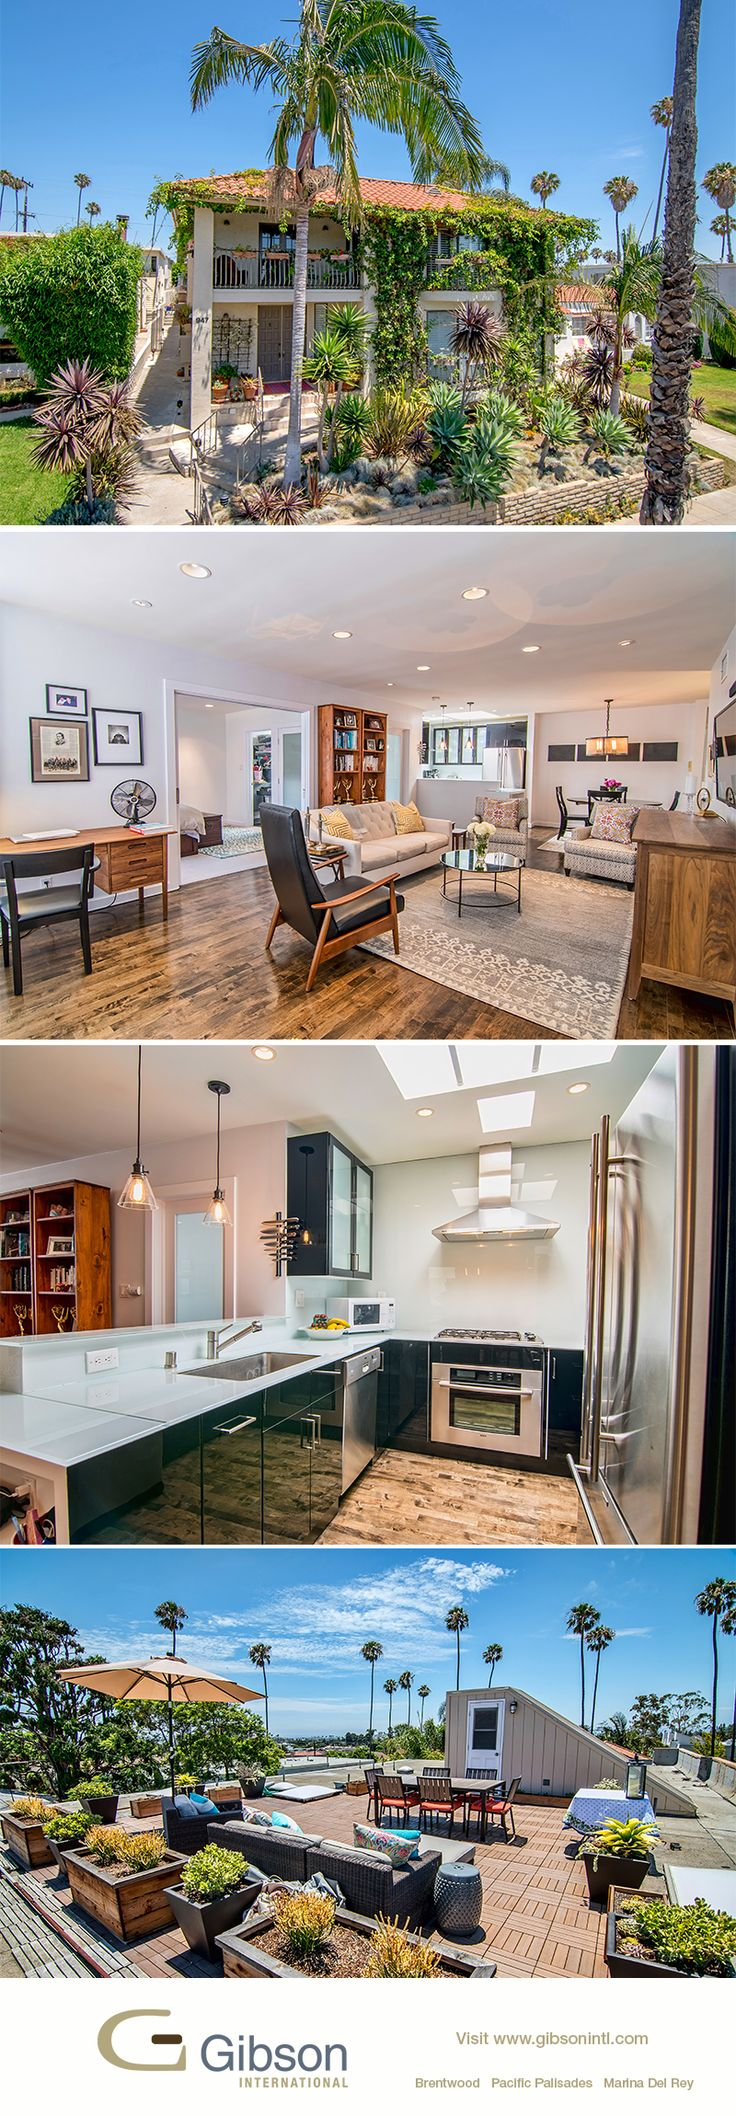 Ultra-modern ocean view Penthouse. Located in Mid-City Santa Monica close to Montana Ave shopping and dining. Low HOA dues. Open 8/14 with agents Matt and Kelli Isbell.